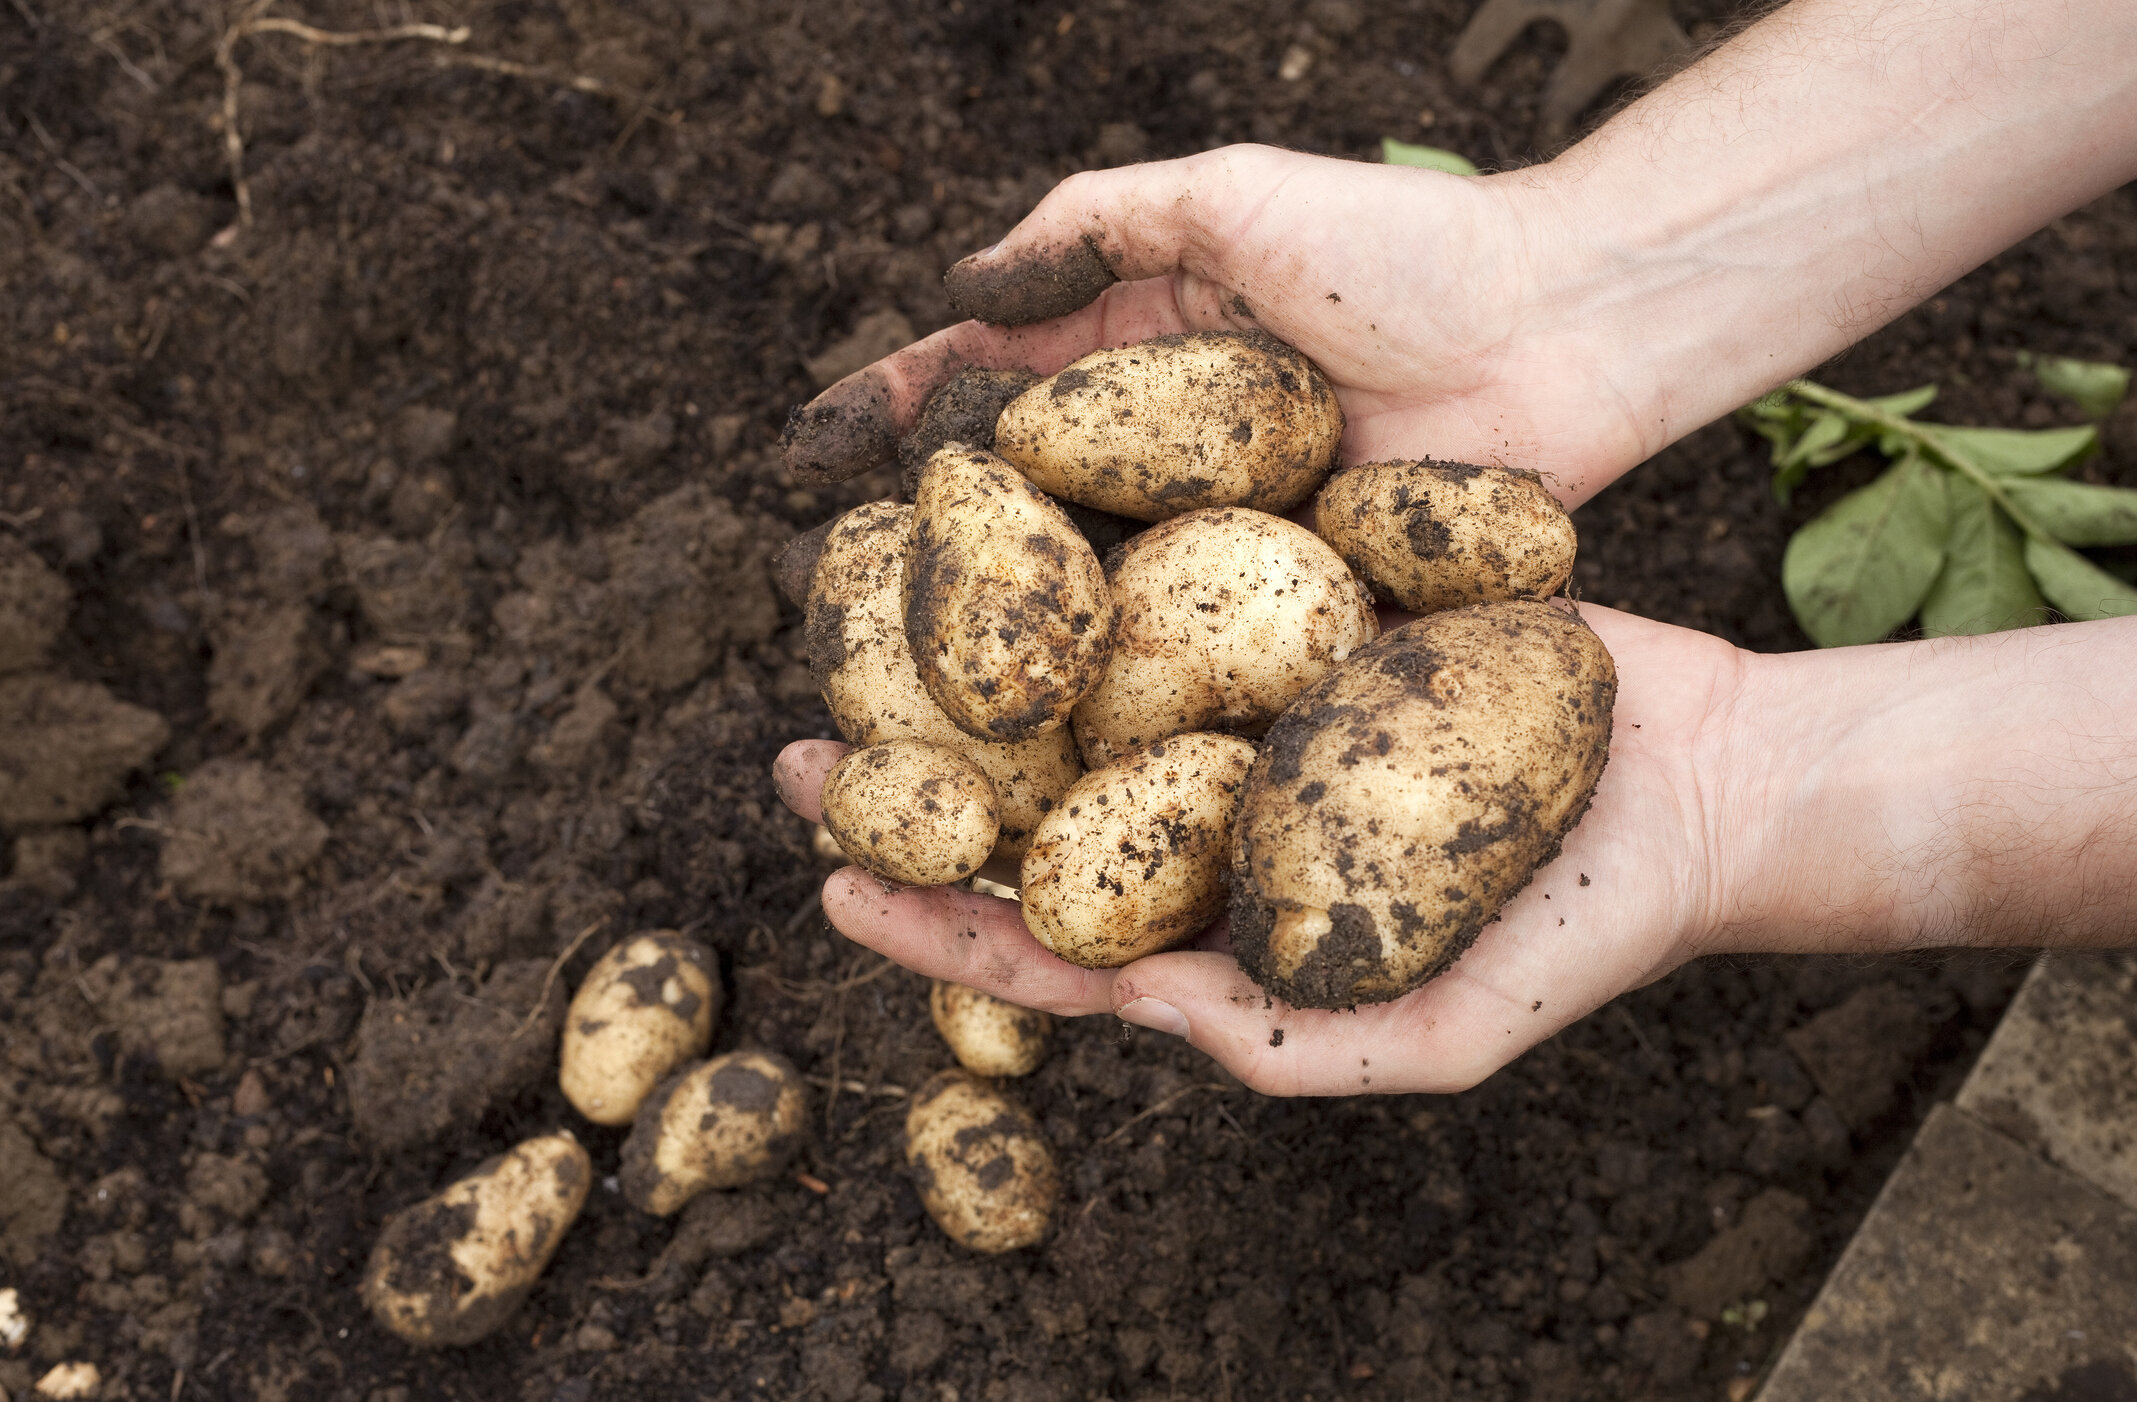 Potatoes are easy and fun to grow especially if you're a beginner. Don't have the space? Grow them in containers and then when it's time to harvest, simply turn the container over and dump them out.